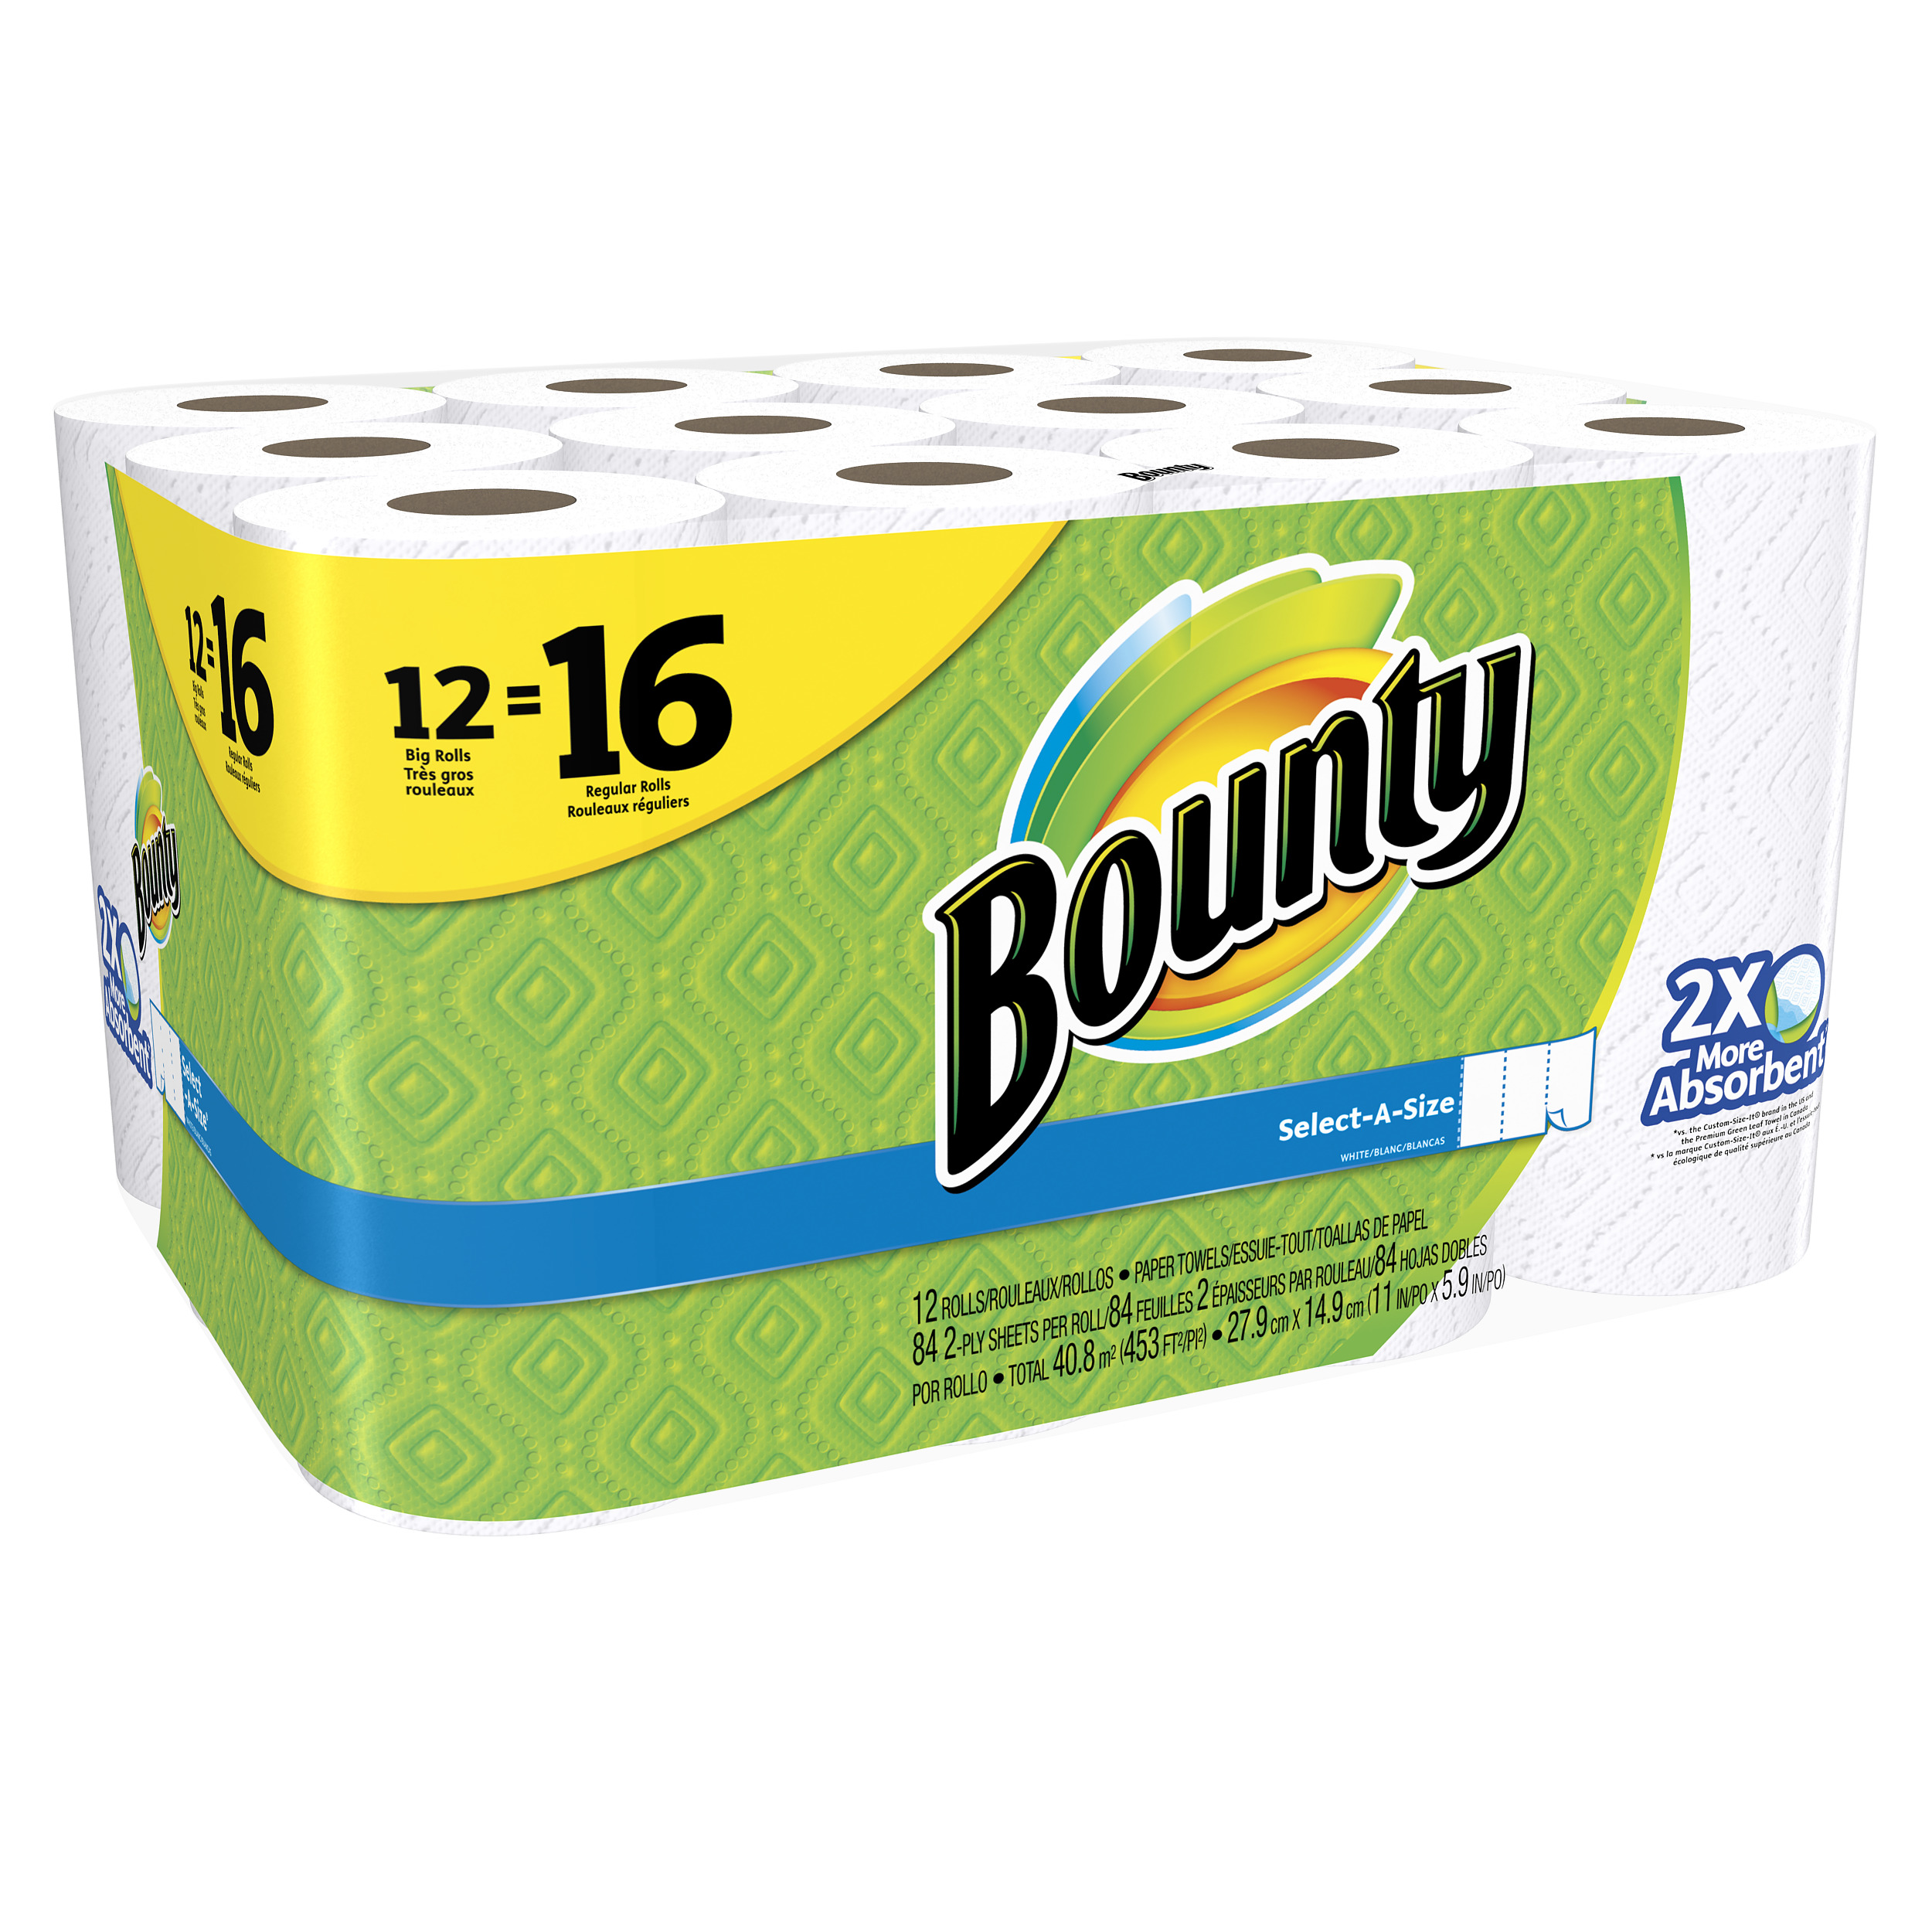 56aca312dd1 ... White Paper Towel 2 Roll 003700088182 The. Bounty Select A Size Big Roll  Paper Towels 84 Sheets 12 Rolls